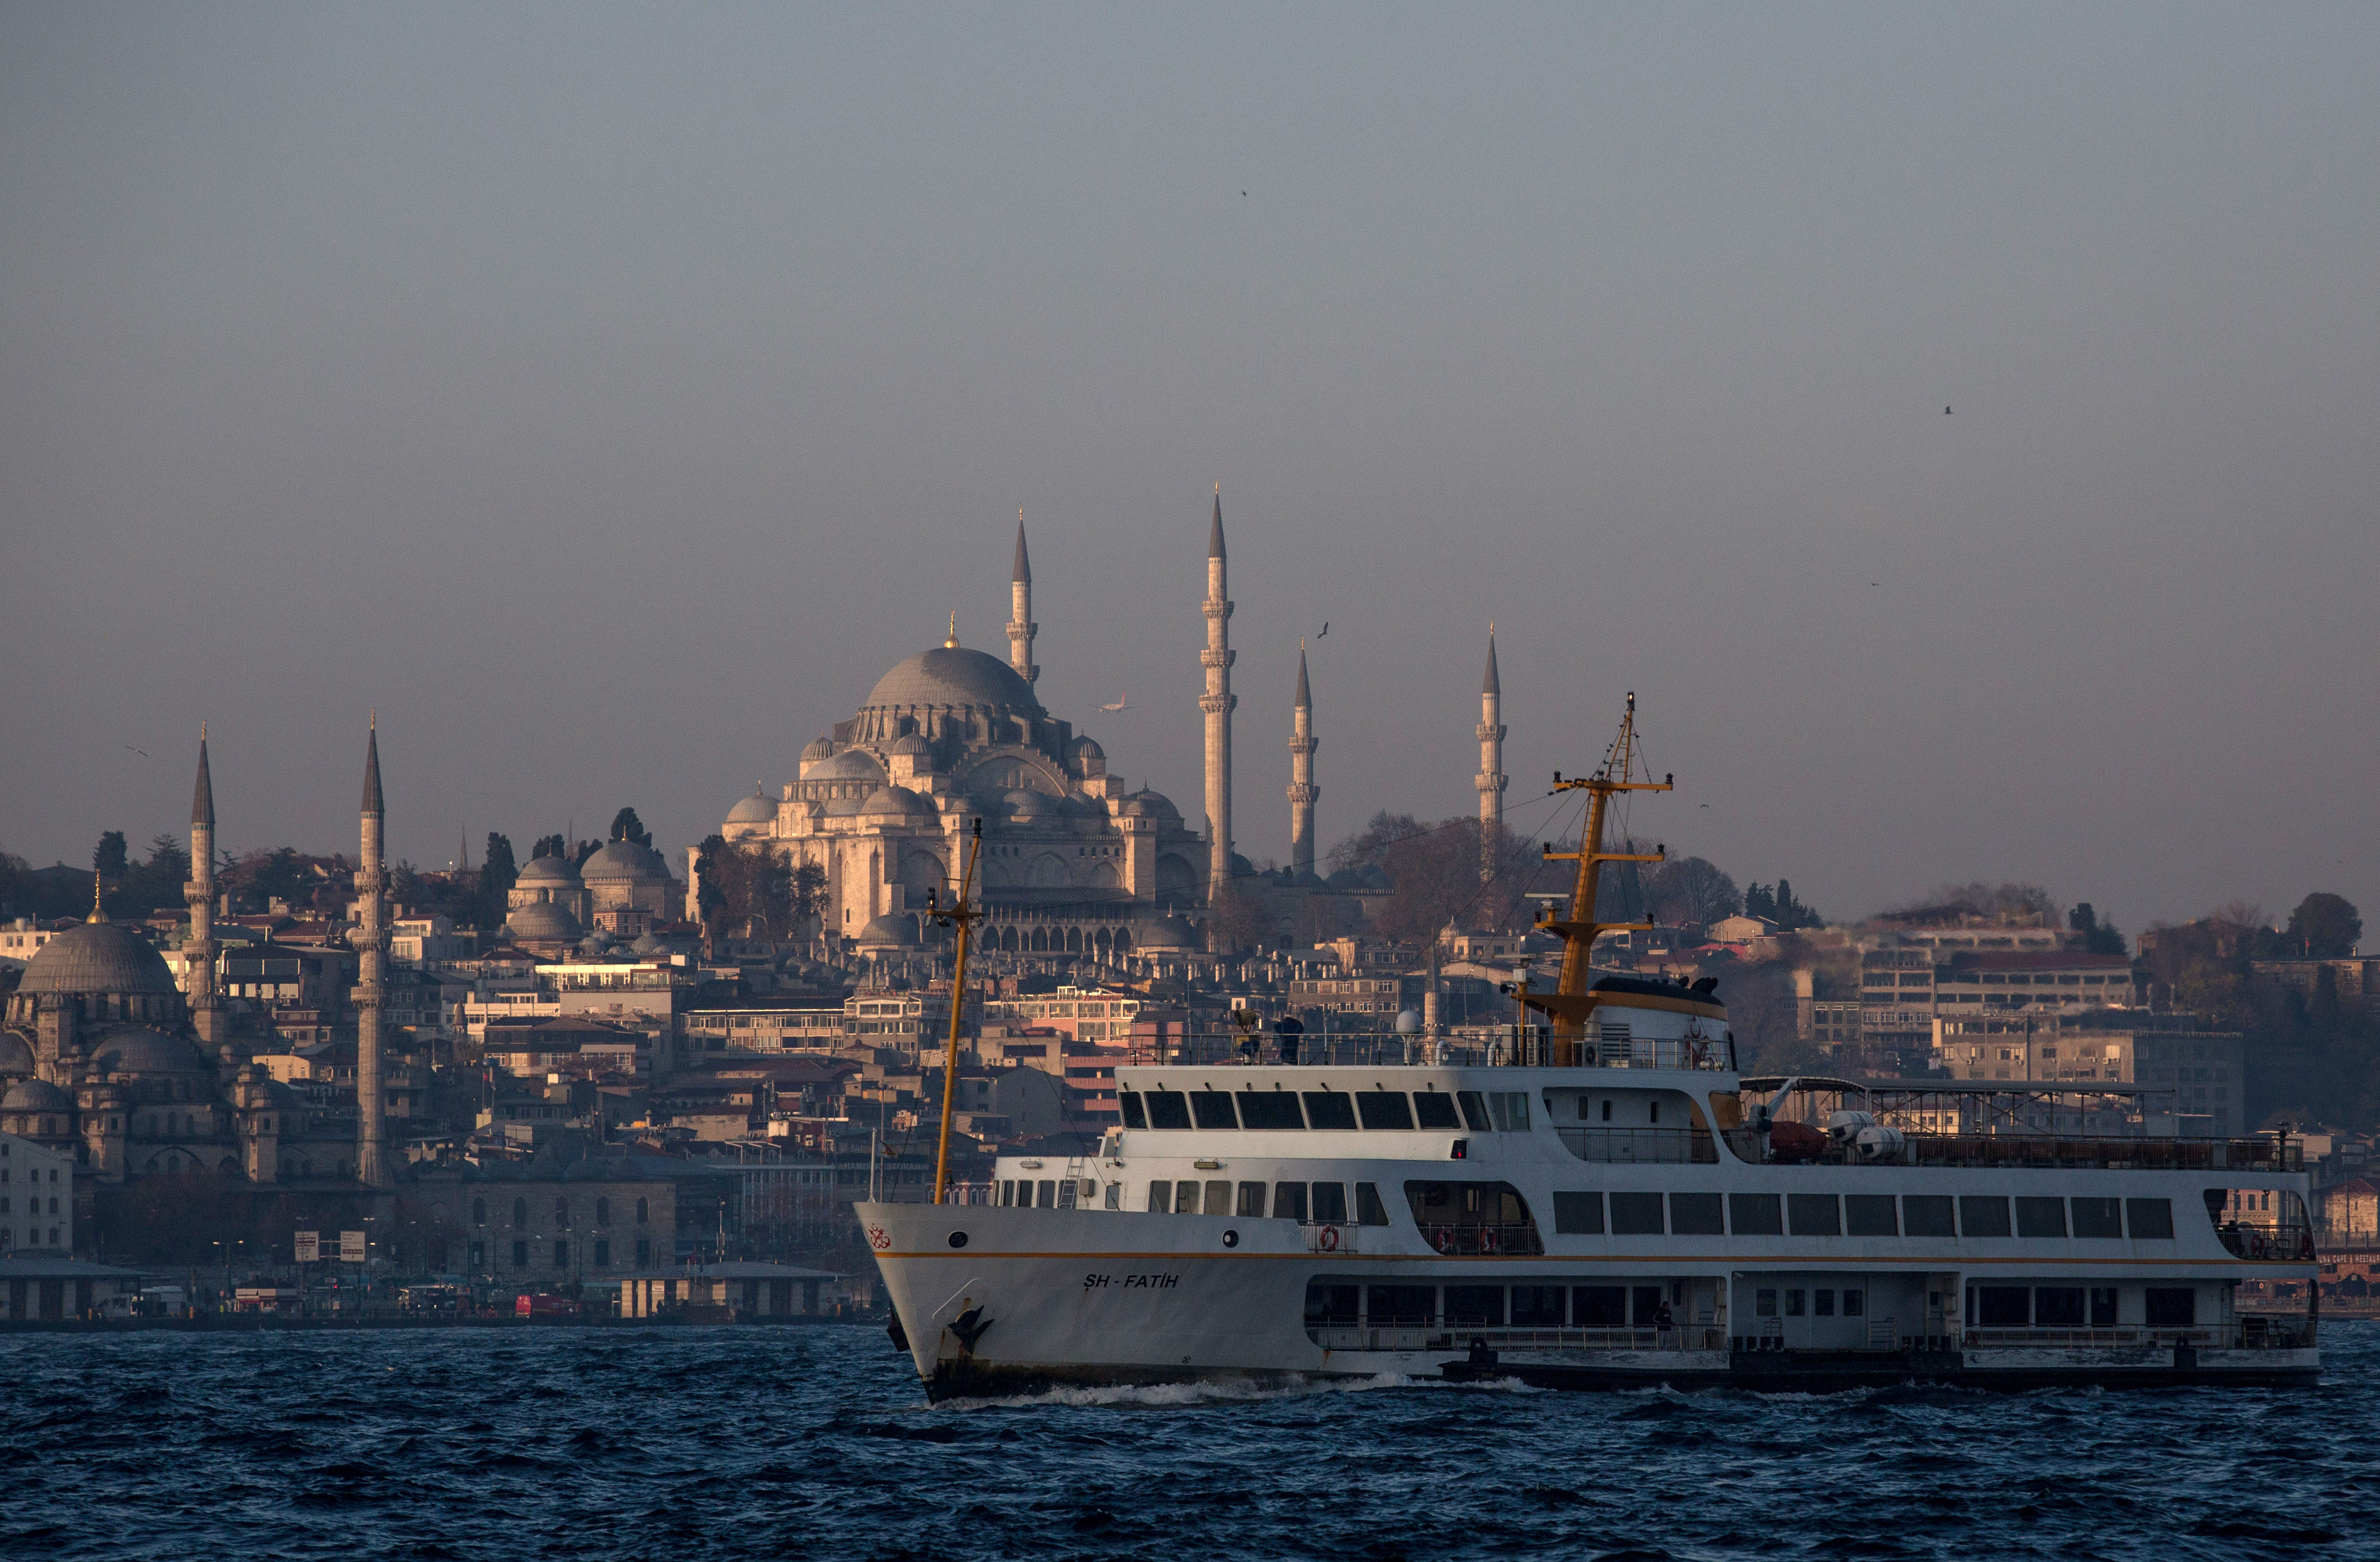 ISTANBUL, TURKEY - DECEMBER 14: A ferry is seen on route to the Asian side on December 14, 2015 in Istanbul, Turkey. Istanbul in Turkey's northwest is the only city on earth spanning two continents. The Bosphorus, a small stretch of water divides Europe from Asia. Istanbul's world famous ferries are one of the most popular ways to get around the city, it is estimated that more than 300,000 people take the ferry to work each day.